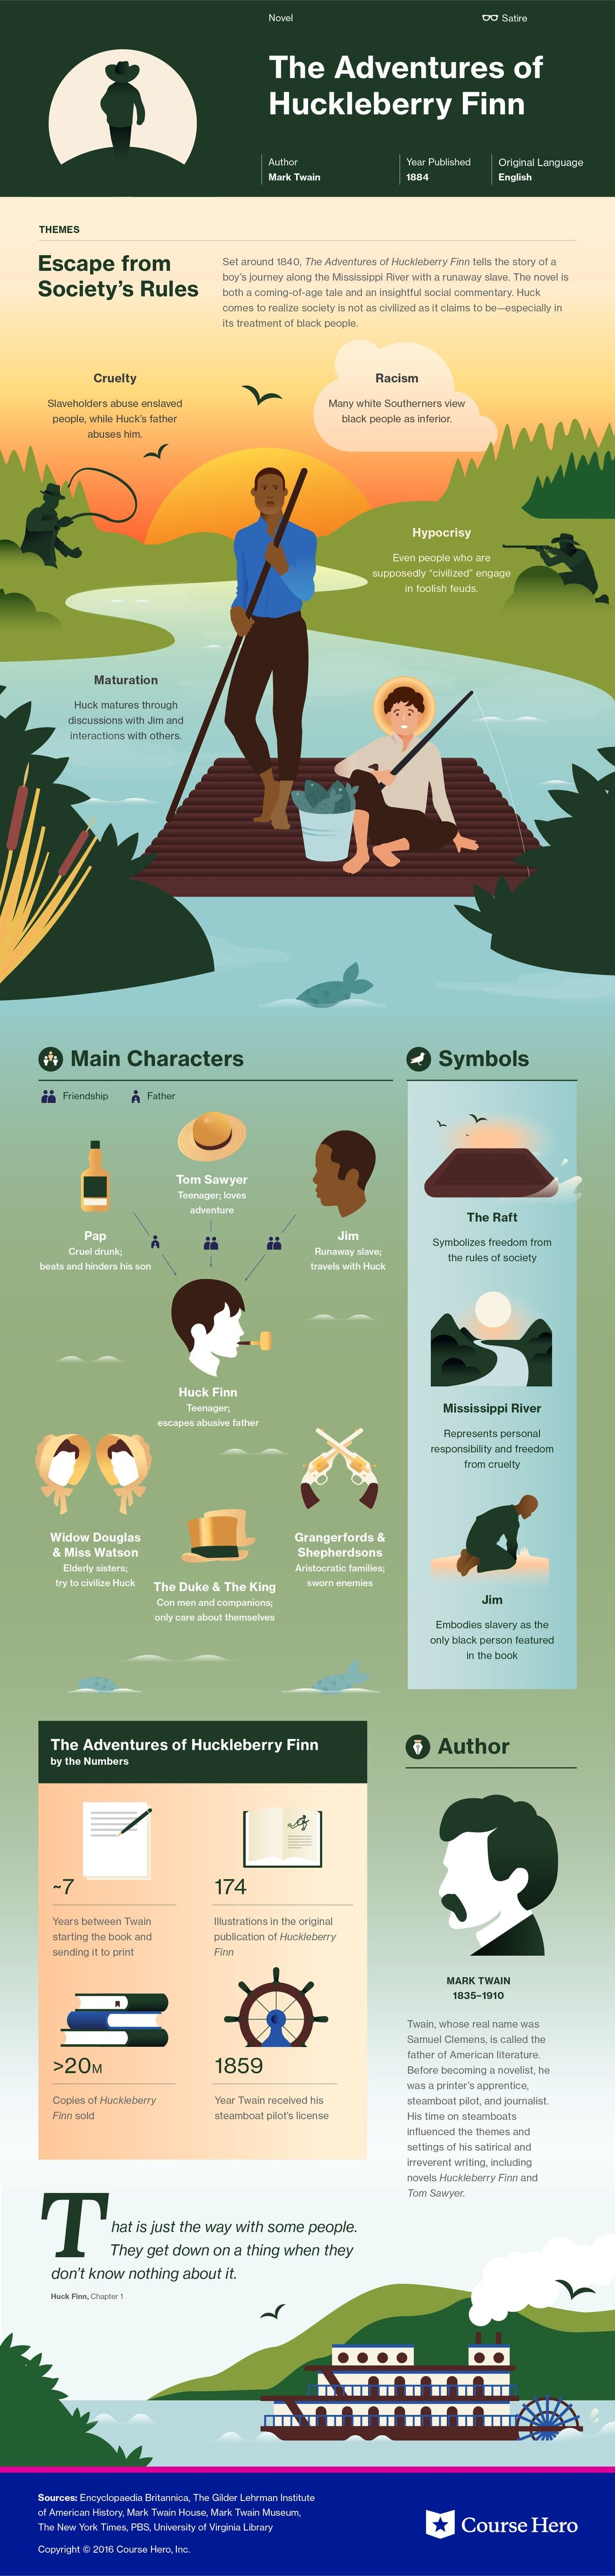 access quality crowd sourced study materials tagged to courses at check out study guide for mark twain s the adventures of huckleberry finn including chapter summary character analysis and more